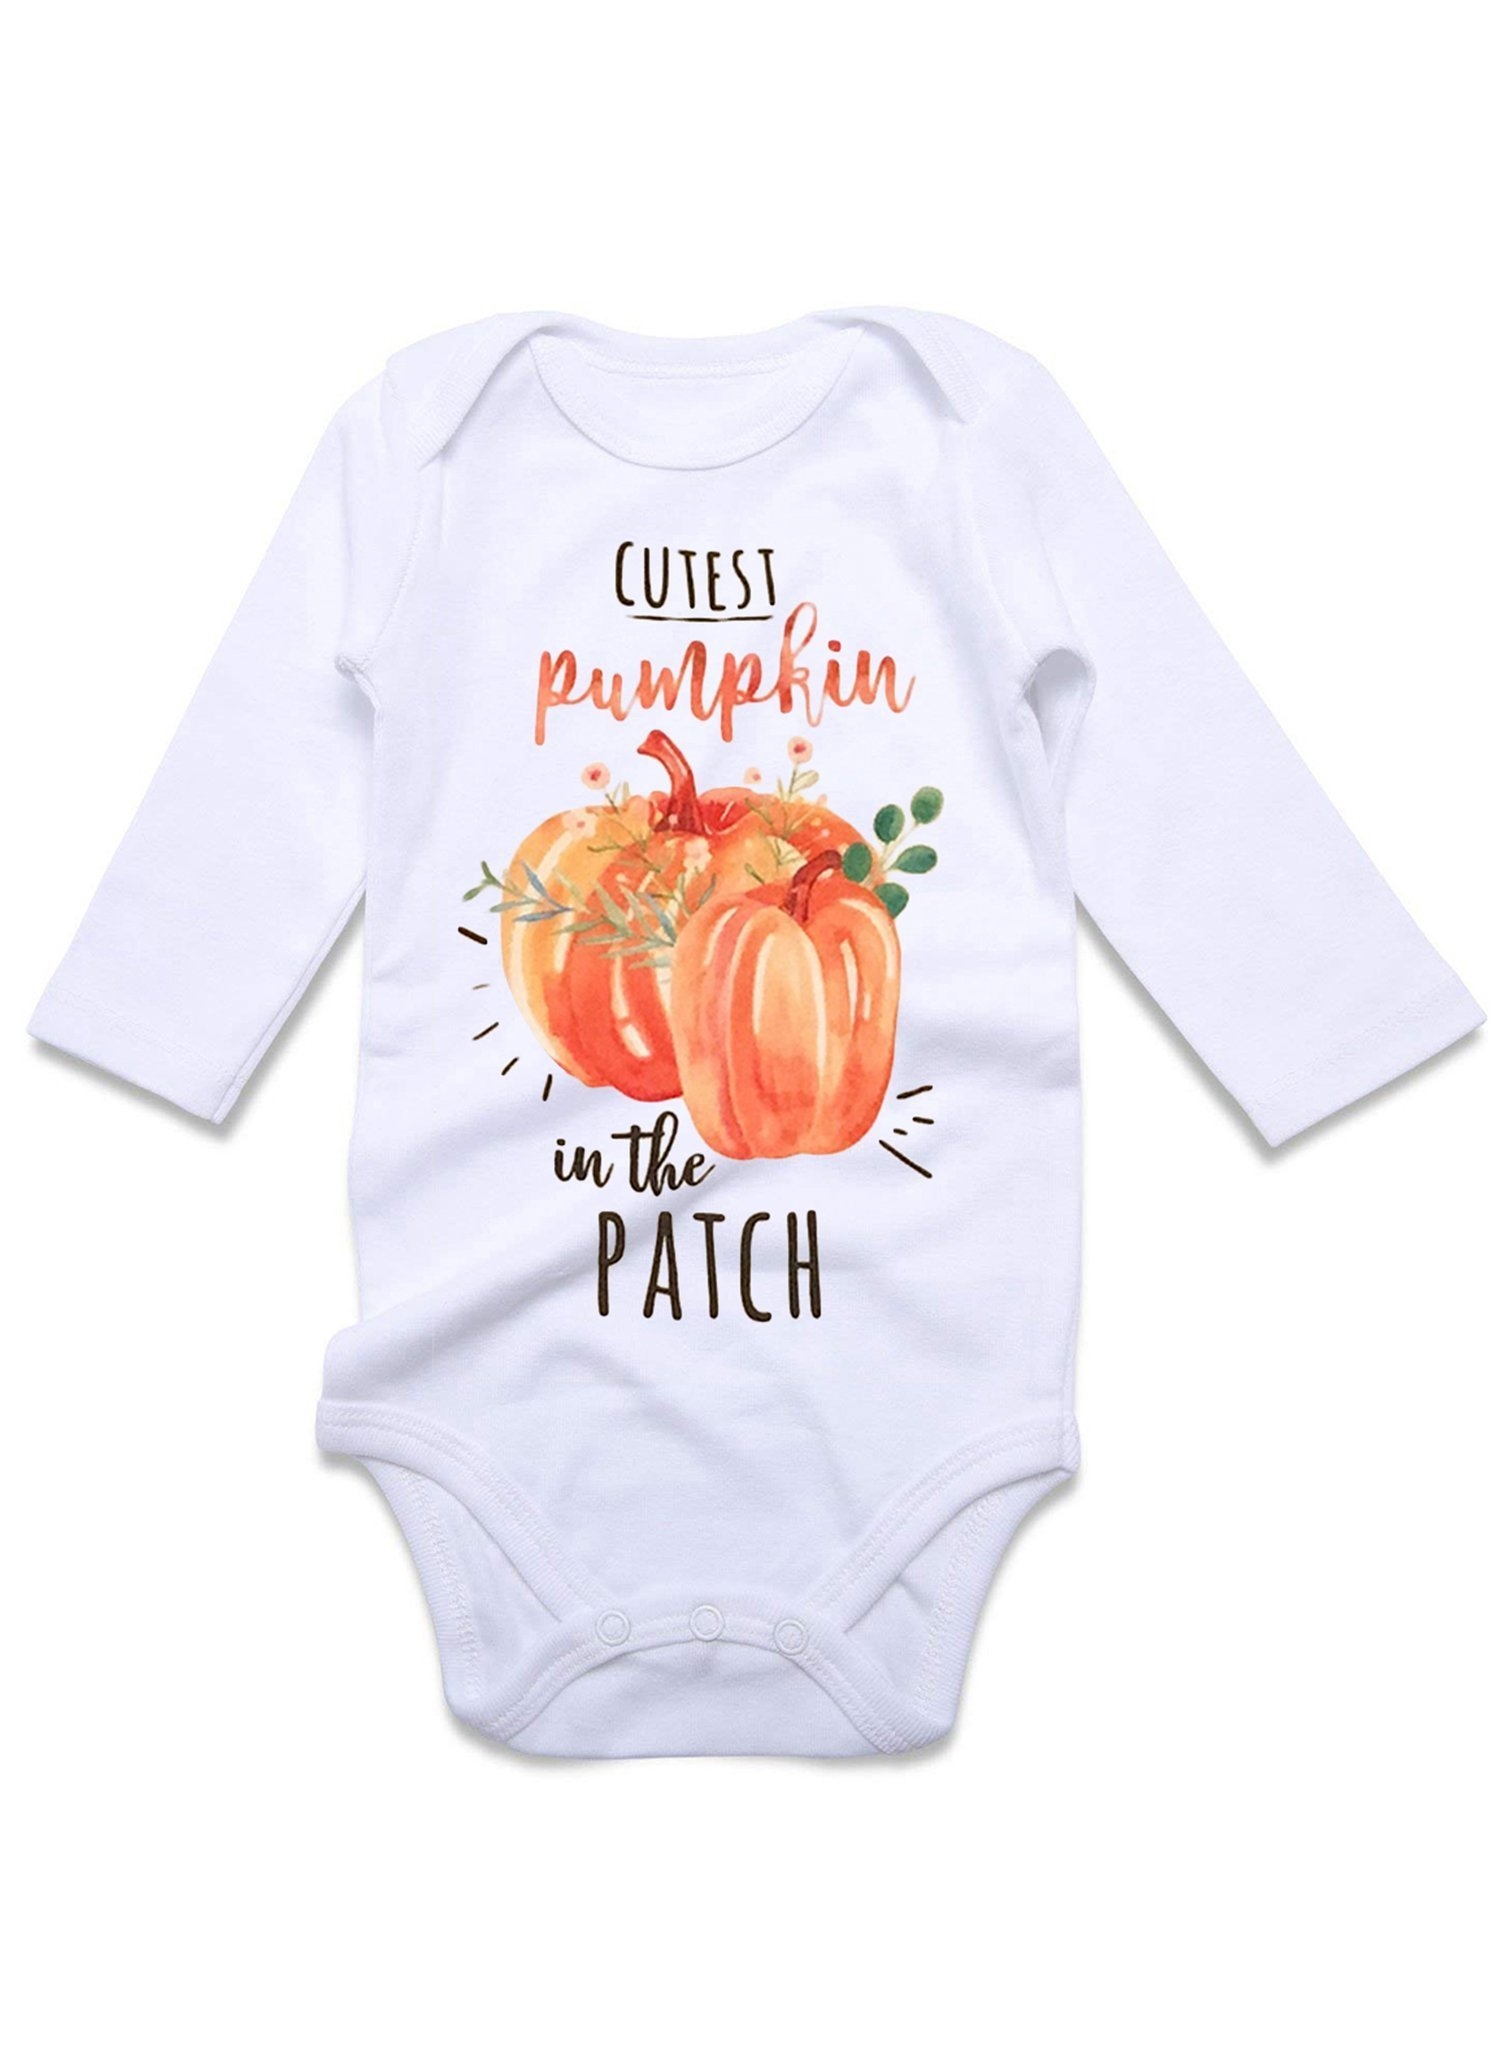 Loveternal Baby Boy Girl Outfit Newborn 6-9 Months Halloween Rompers Neutral Baby Clothes Summer Romper Funny Cutest Pumpkin in The Patch White